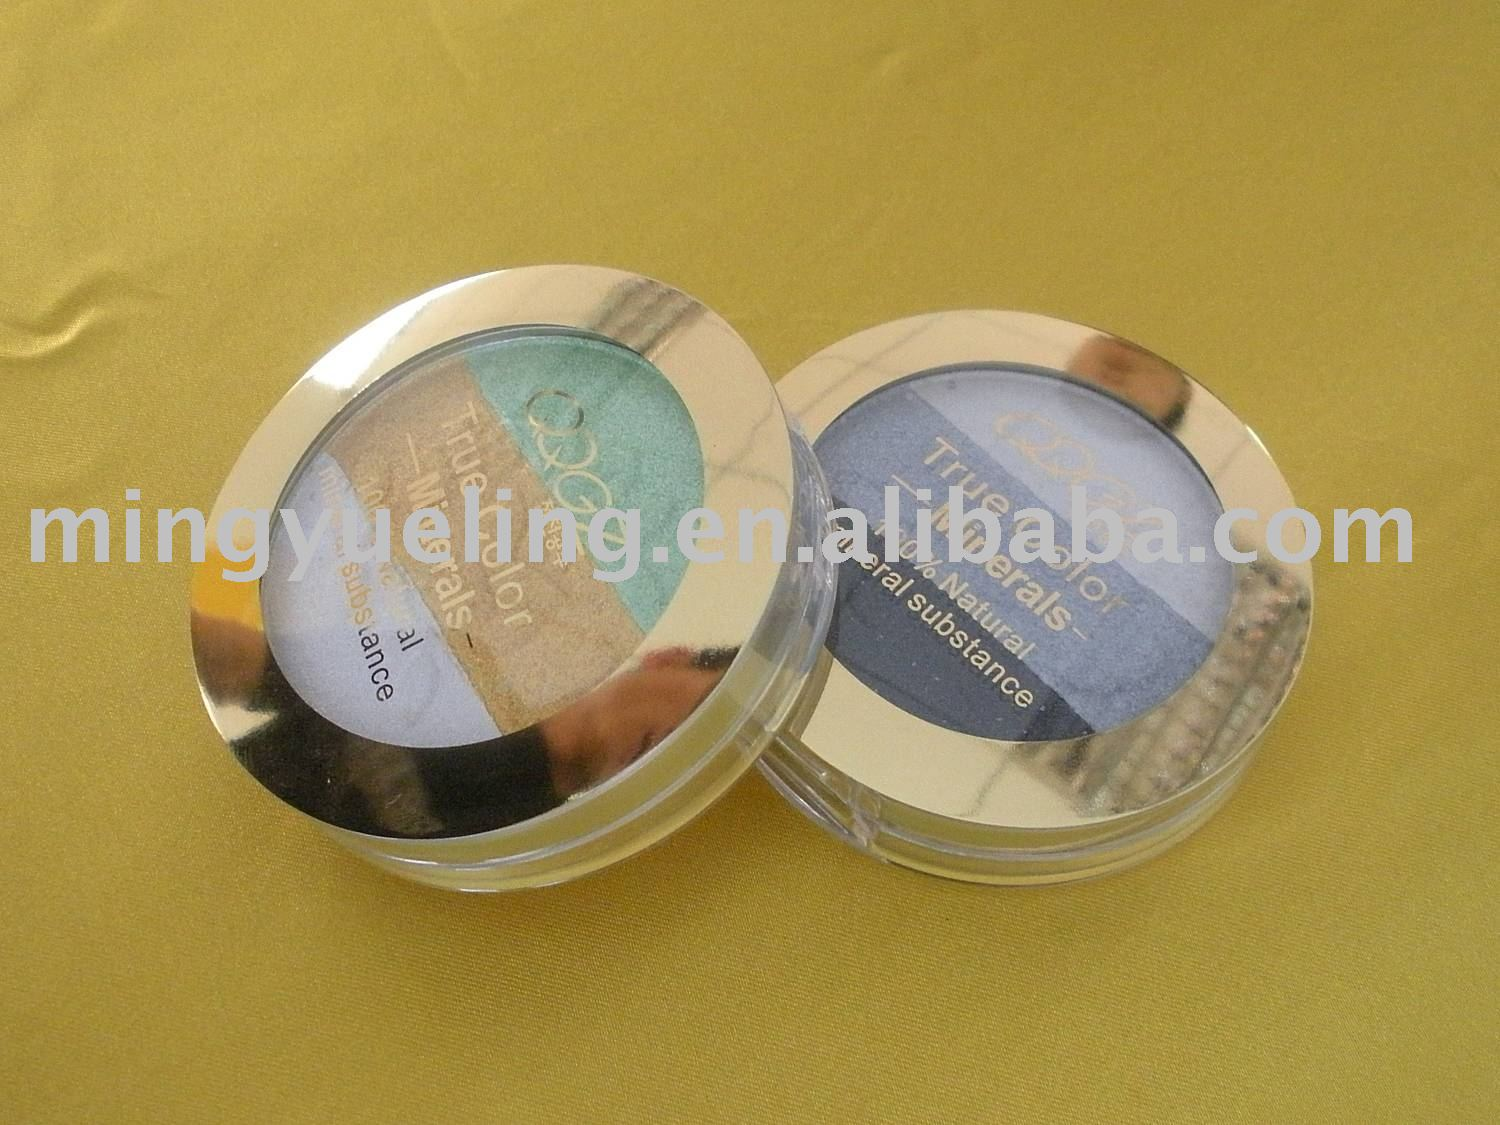 High pigment mineral eye shadow